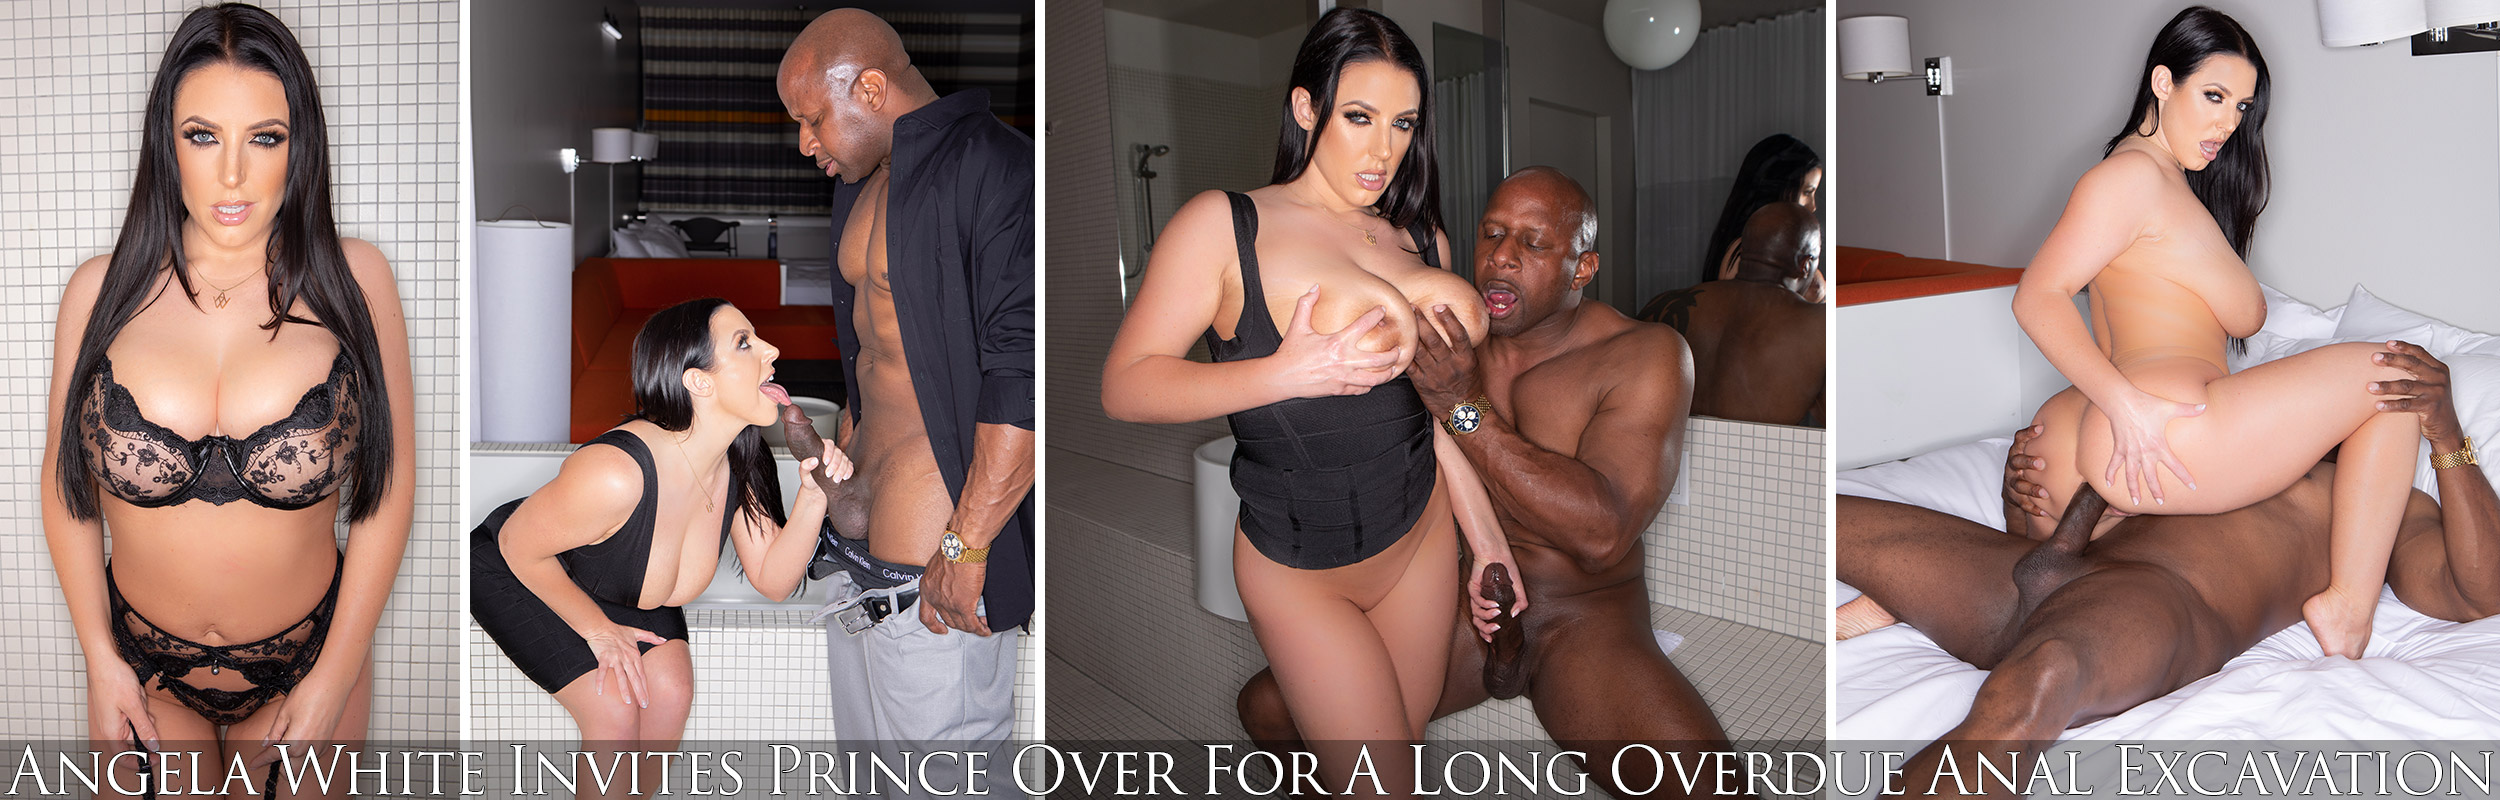 Angela White Invites Prince Over For A Long Overdue Anal Excavation